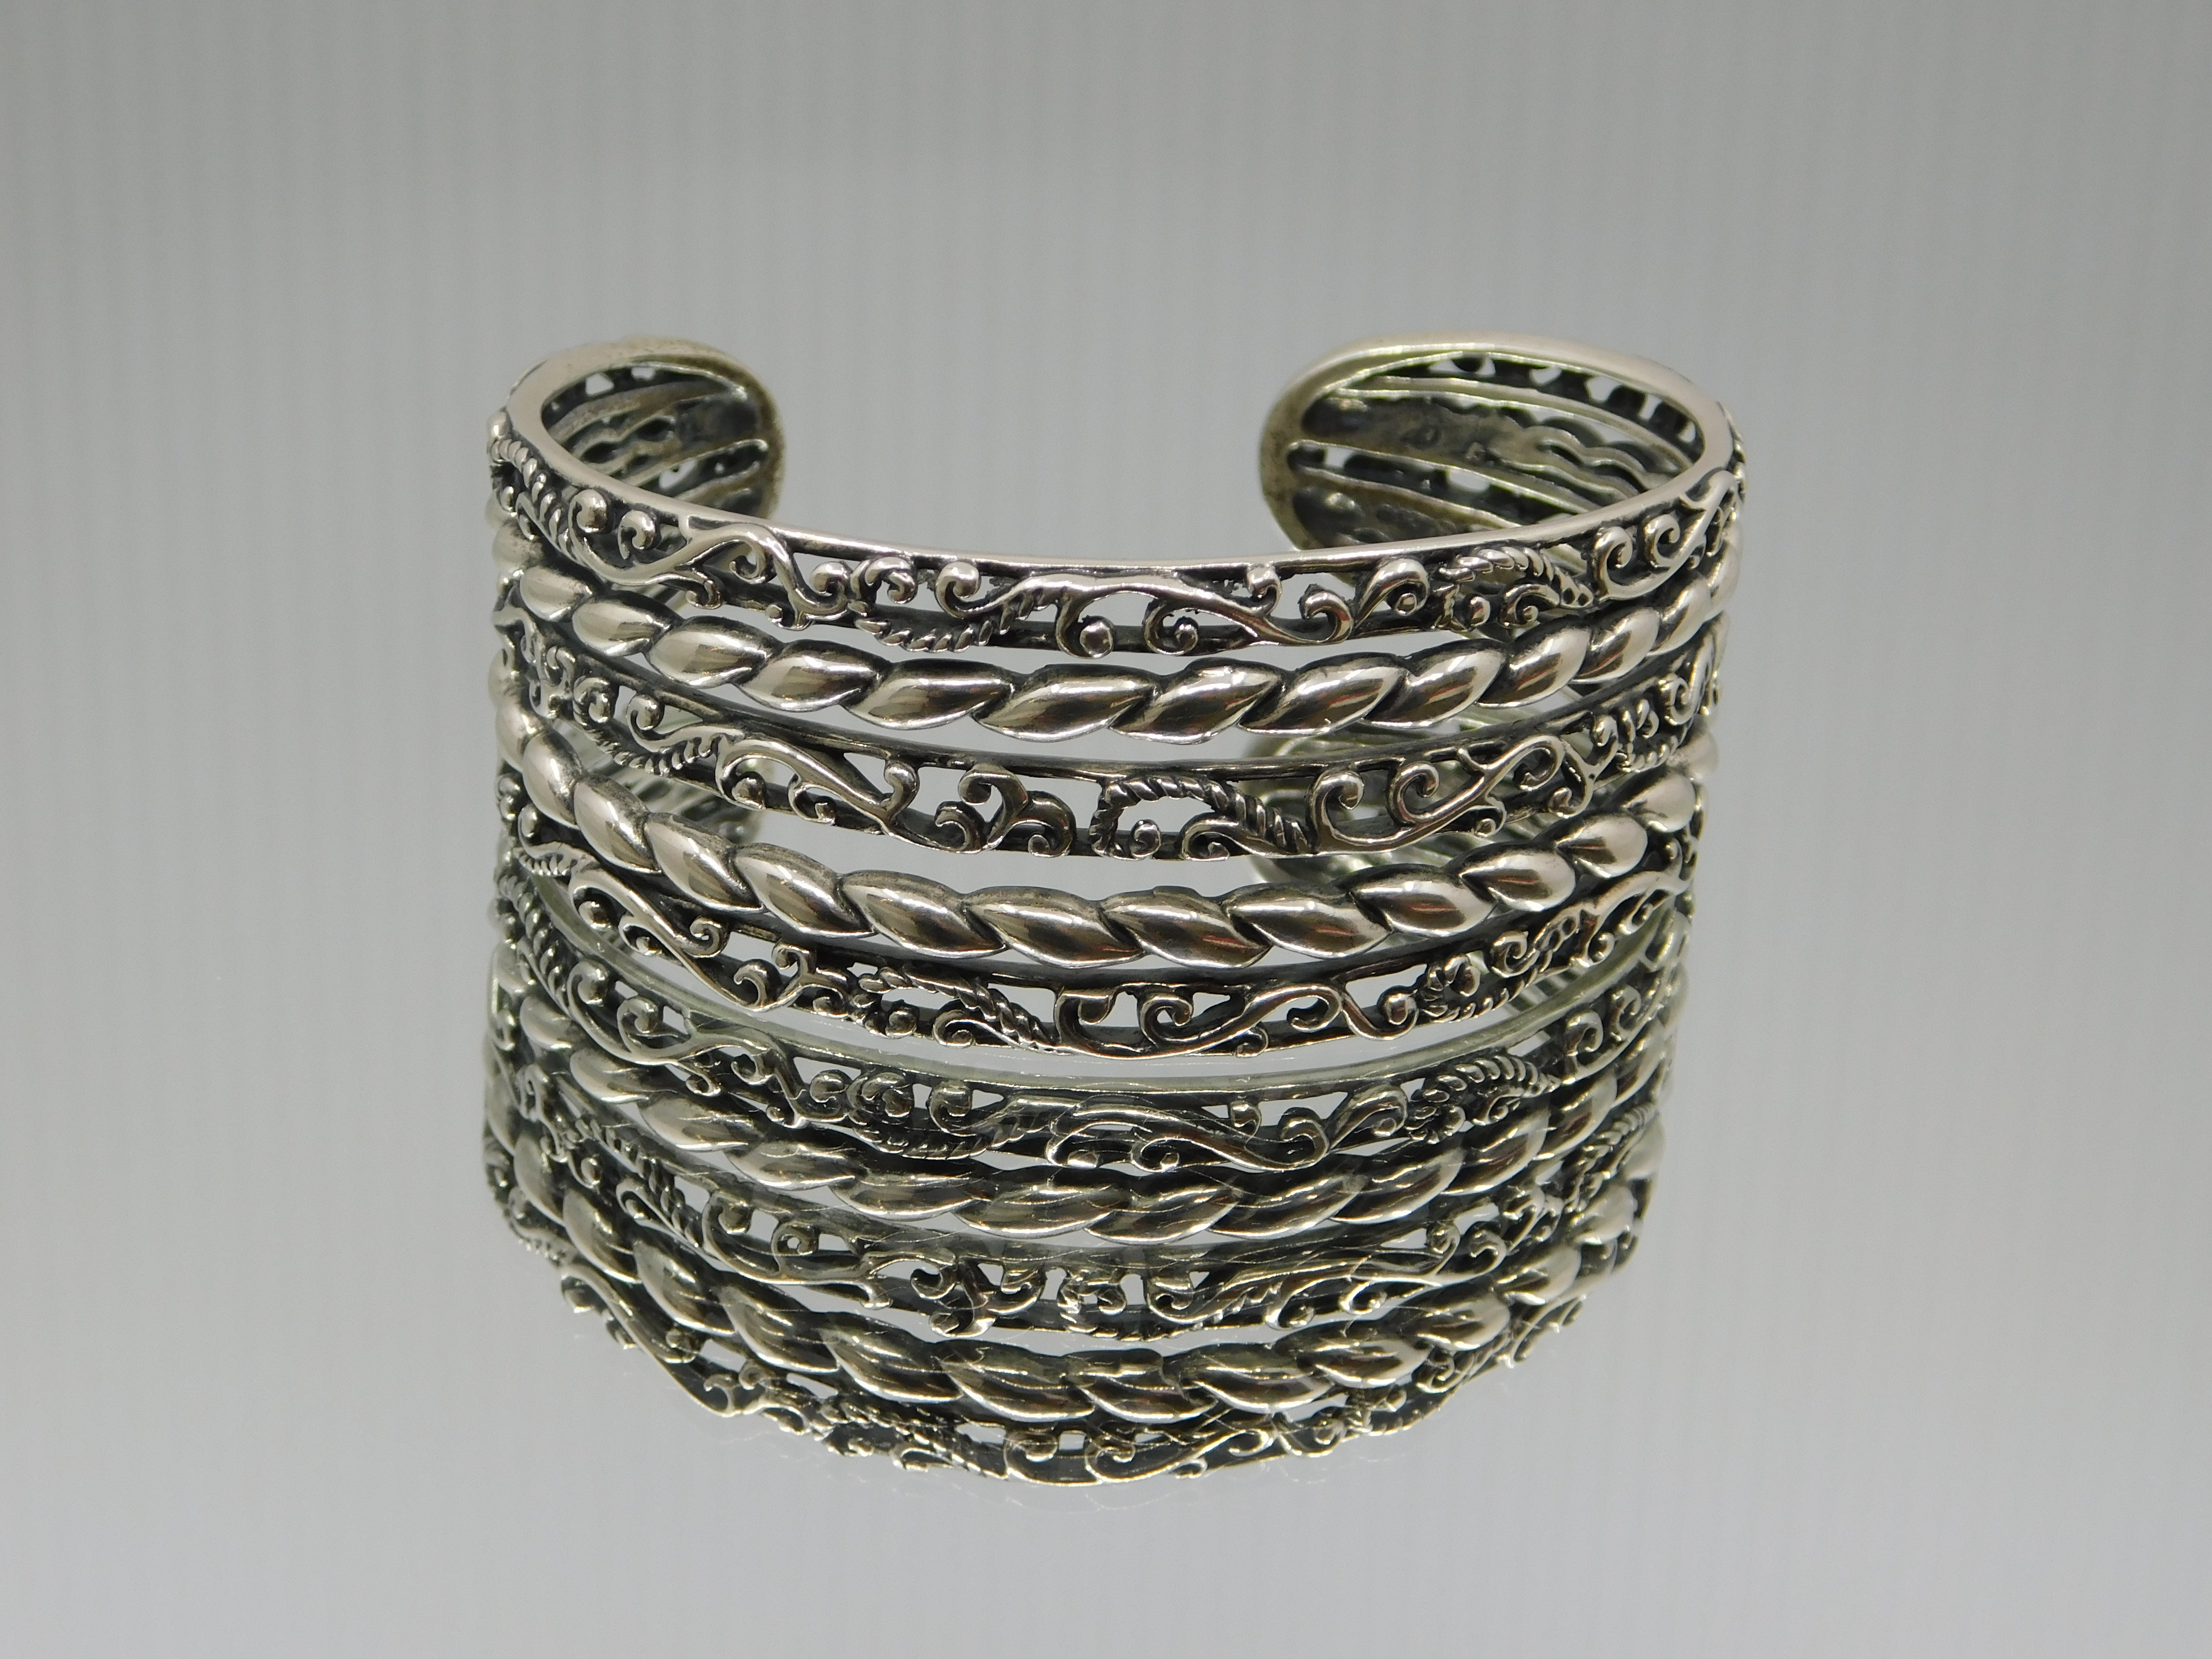 CAROLYN POLLACK 5 BAND WIDE ROPE AND SCROLL CUFF BRACELET